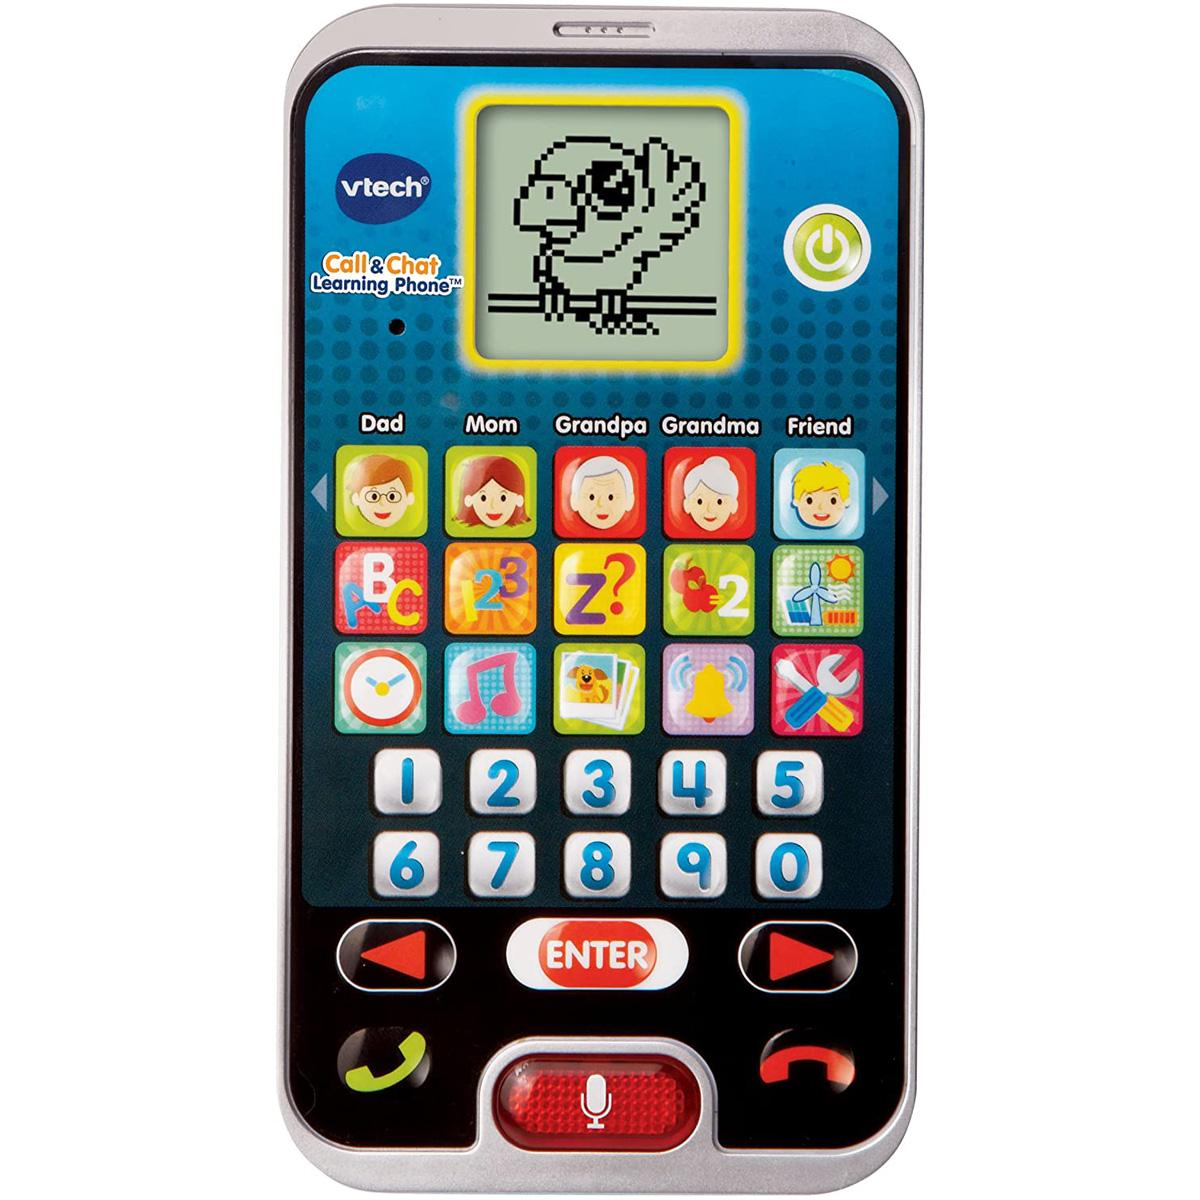 VTech Call and Chat Pretend Play Toy Learning Phone for $5.50